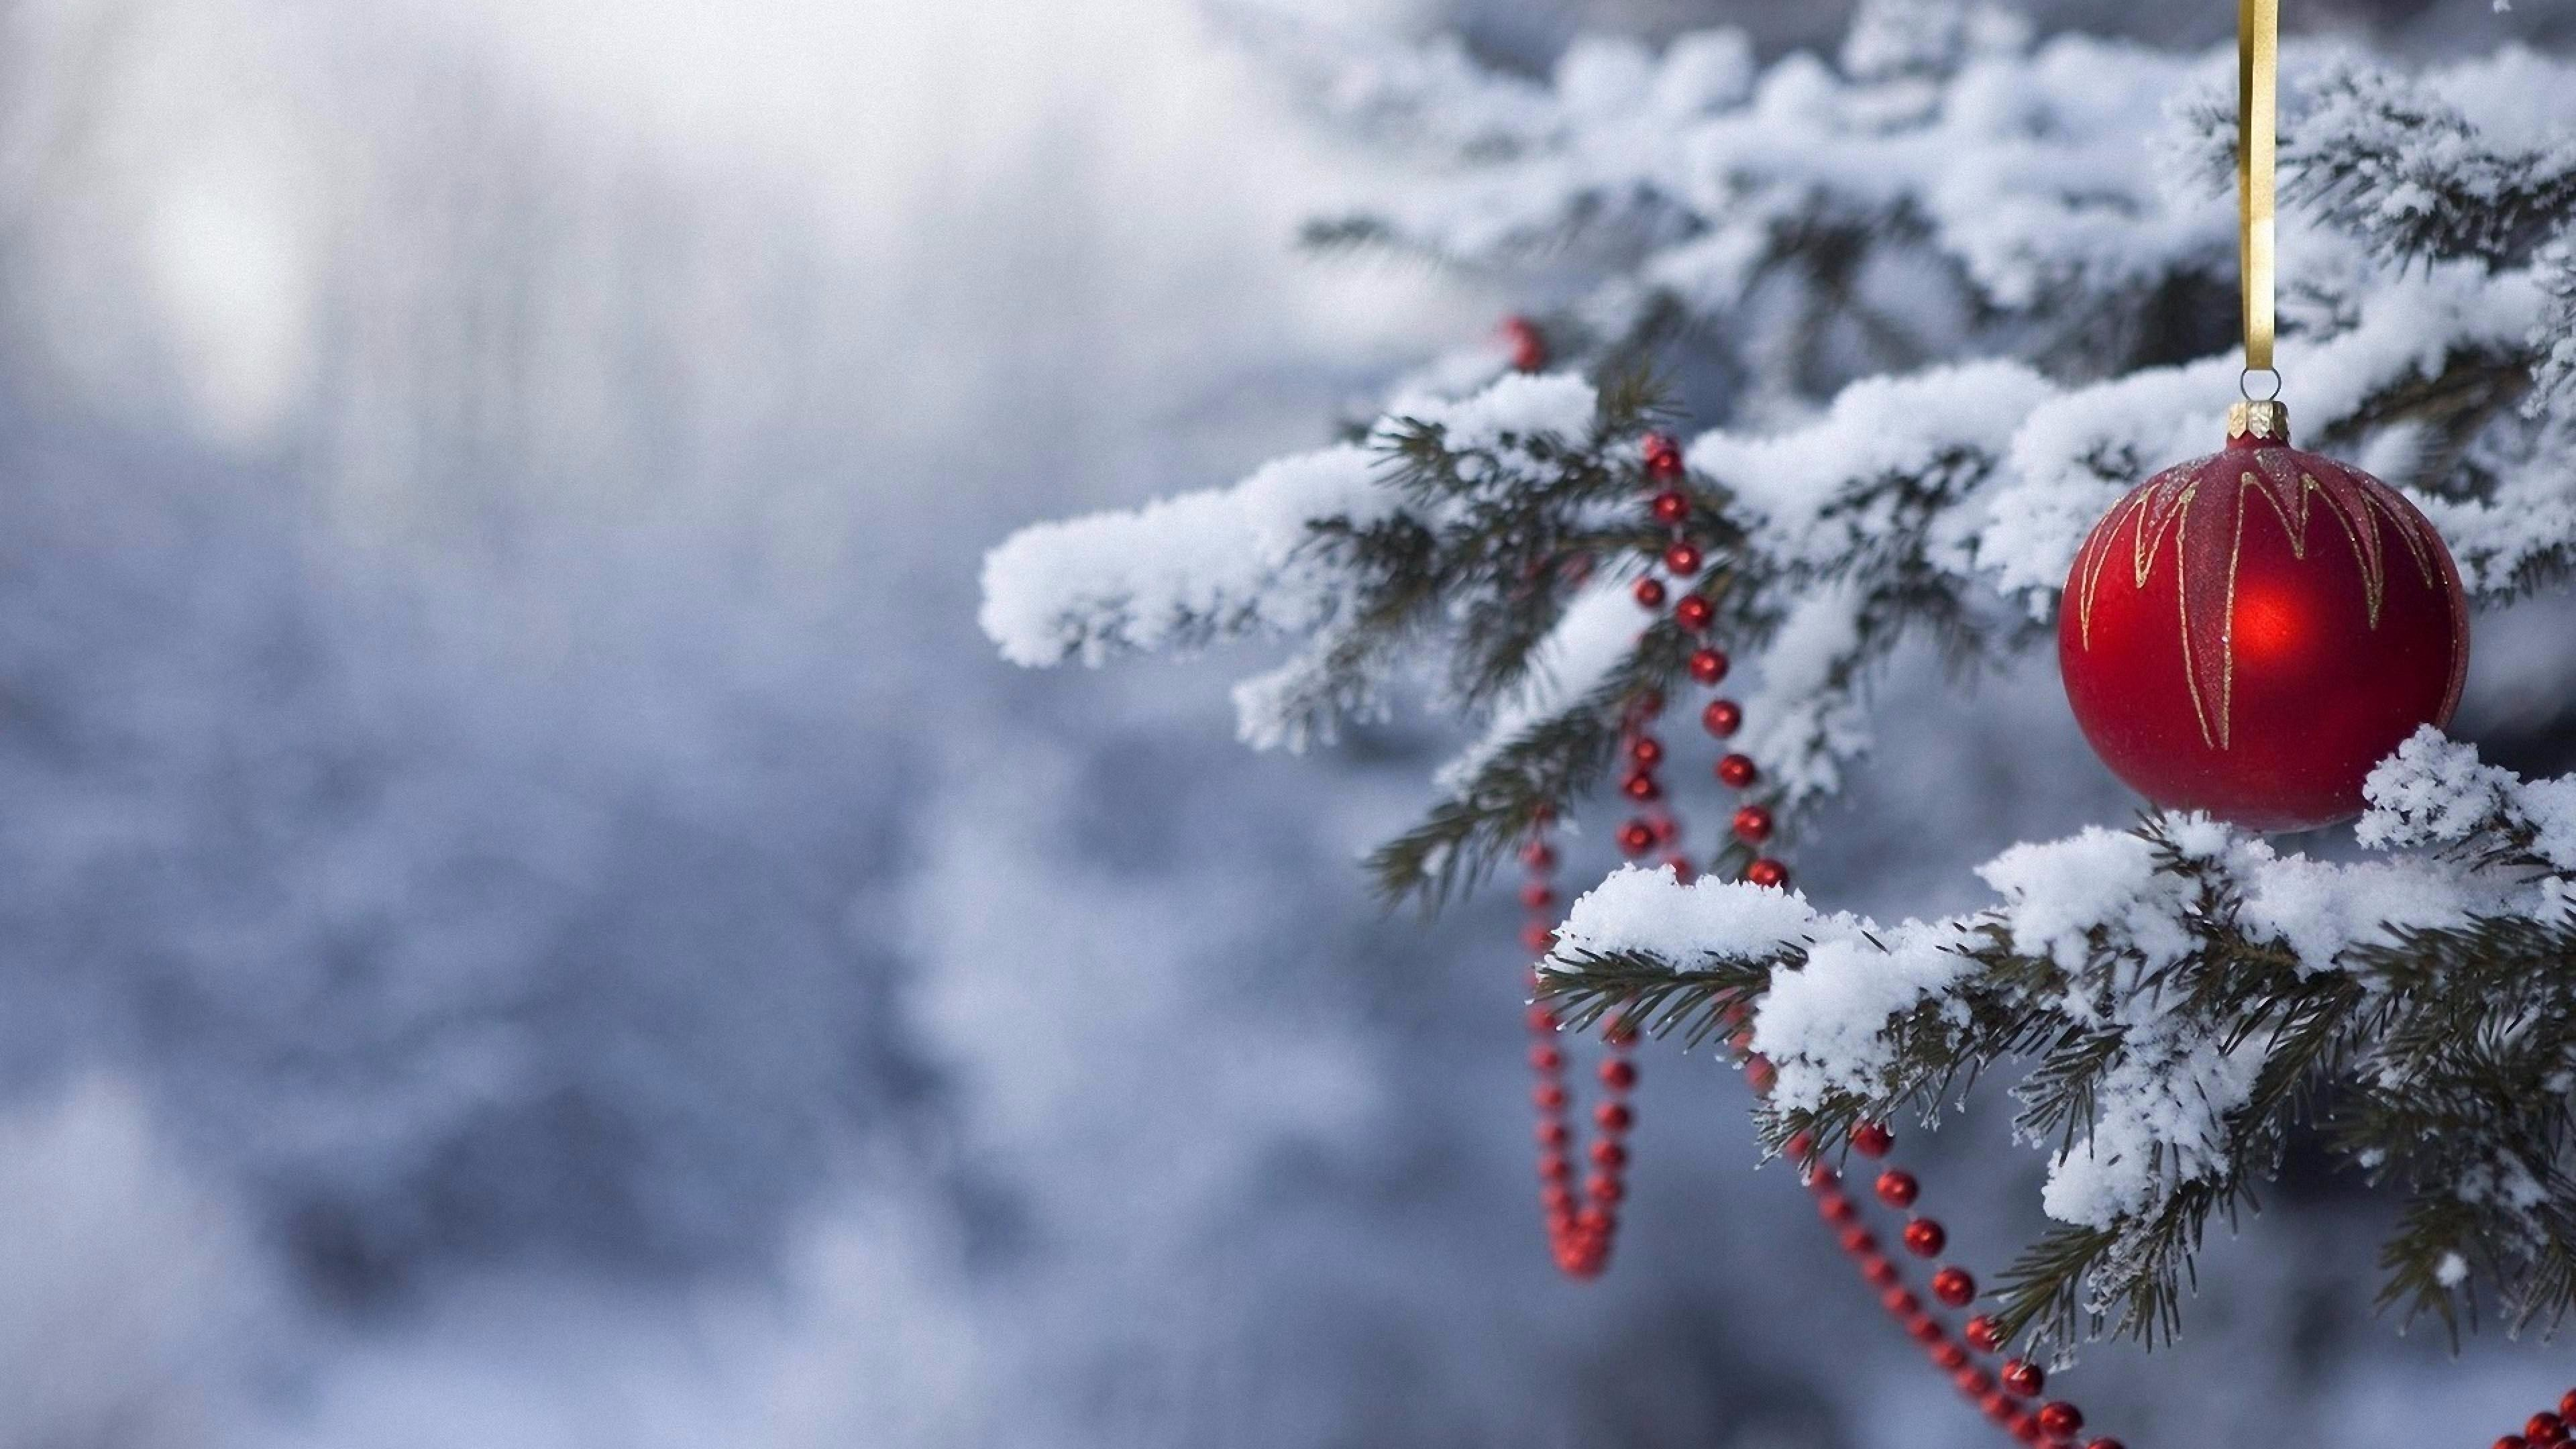 Merry Christmas Wallpaper Live - Christmas Background Hd Snow , HD Wallpaper & Backgrounds